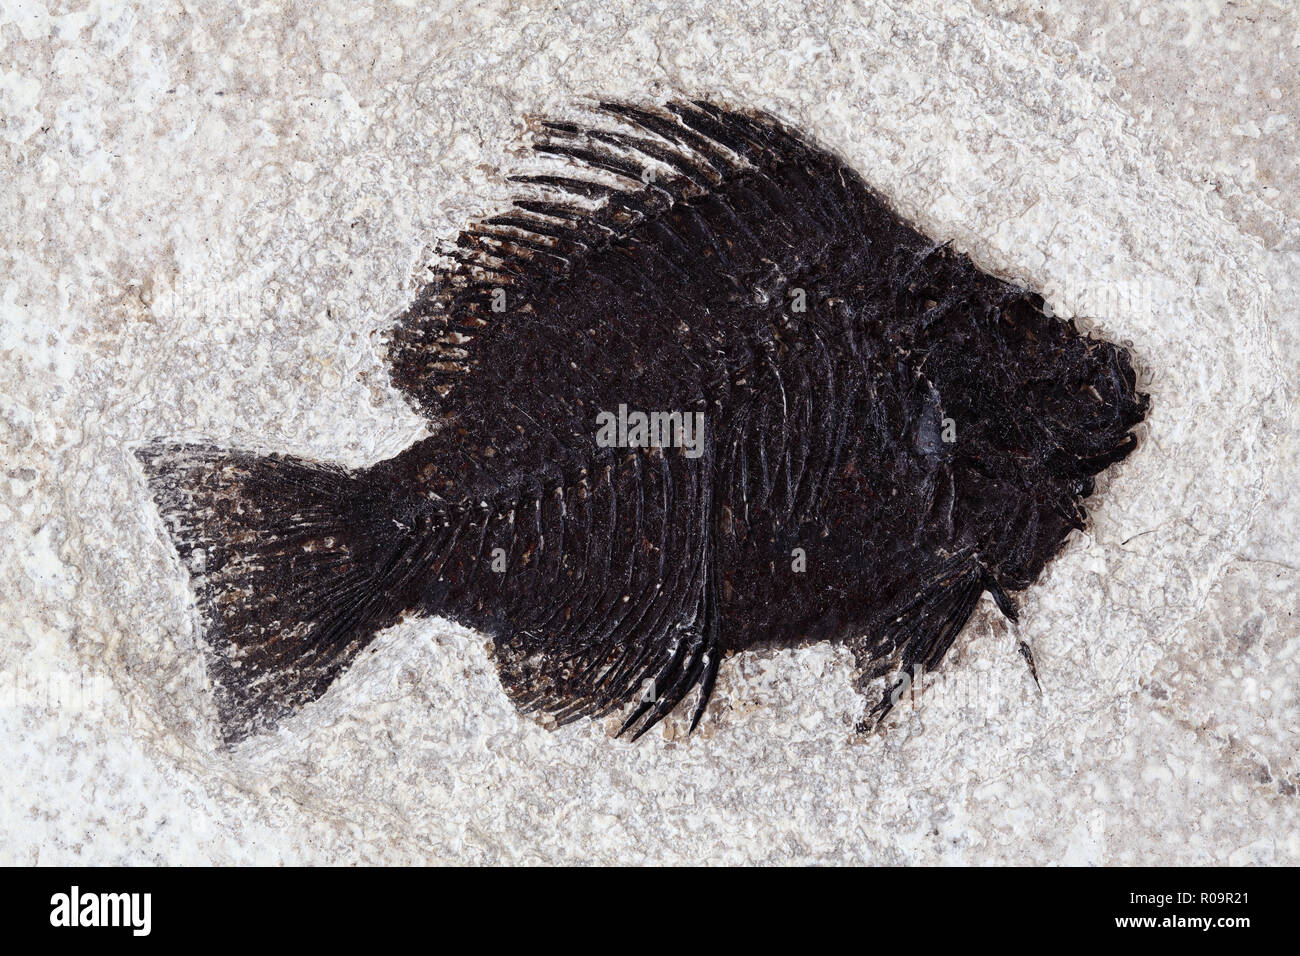 Priscacara fish fossil. Priscacara is an extinct genus of perch from the middle Eocene. Green River, Wyoming shale fossil Utah. - Stock Image